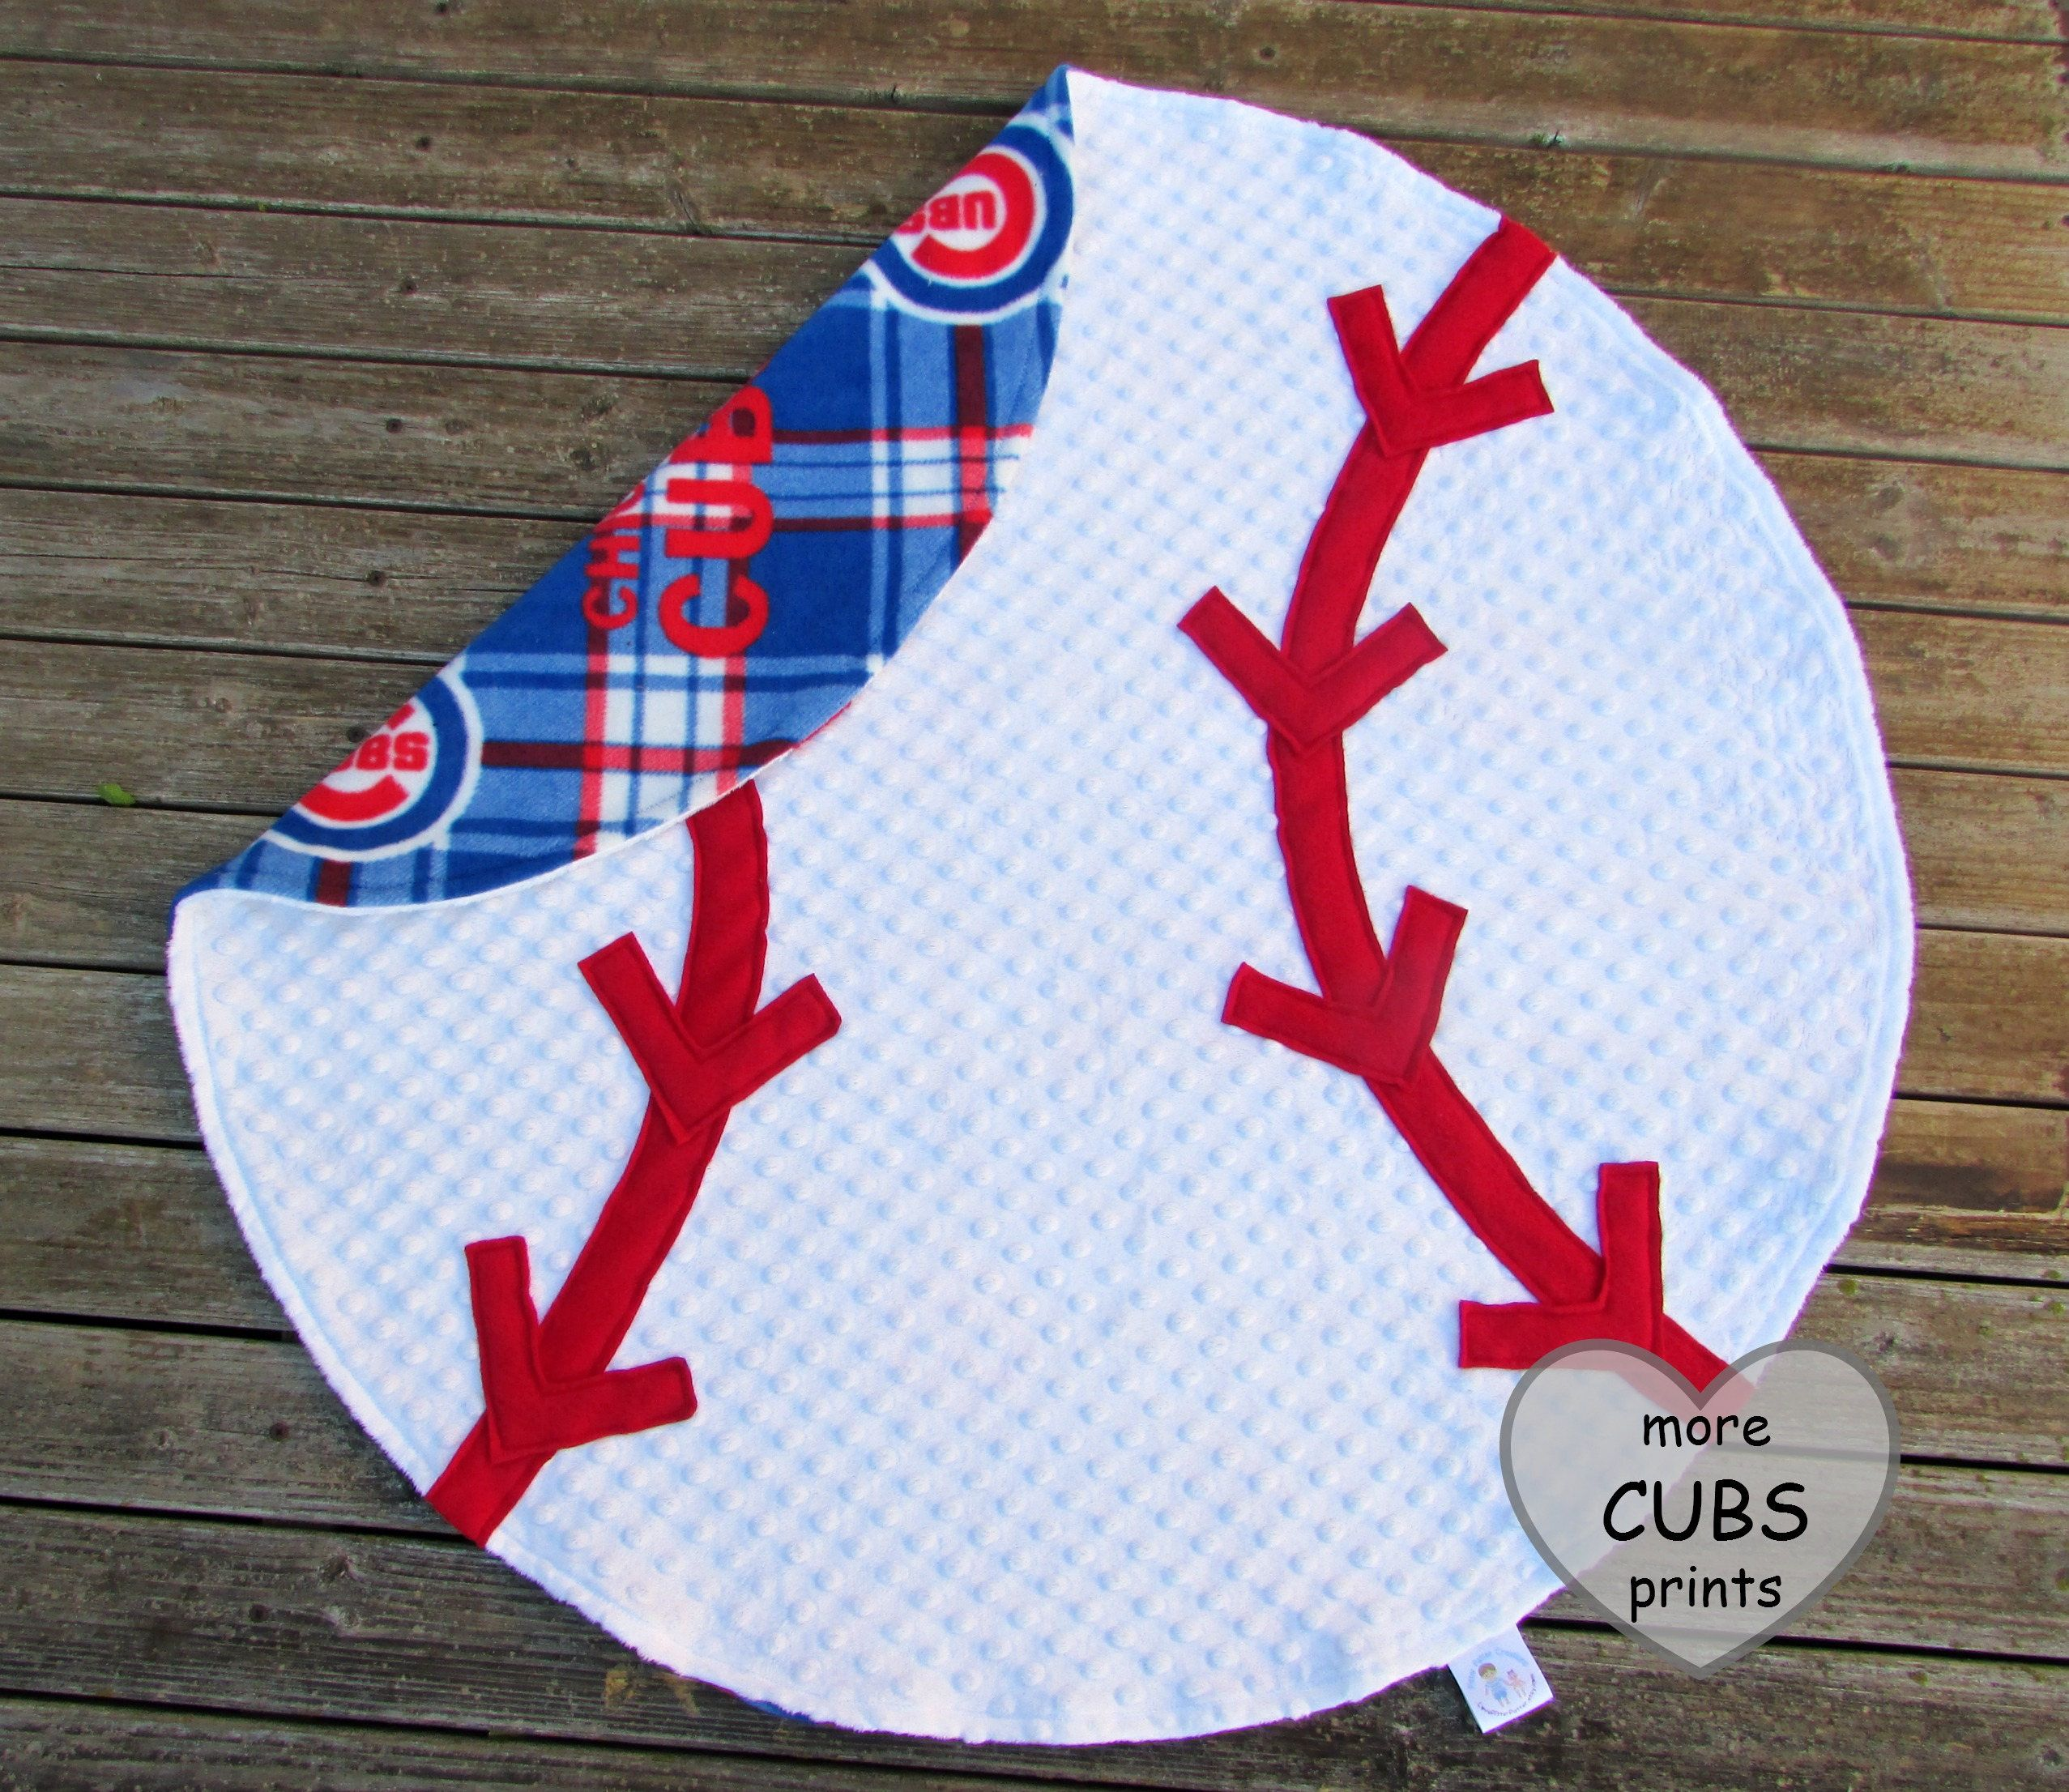 Baseball blanket chicago cubs sports nursery decor photo prop baseball blanket chicago cubs sports nursery decor photo prop personalized blanket baby shower gift minky adult throw cubs decor negle Choice Image